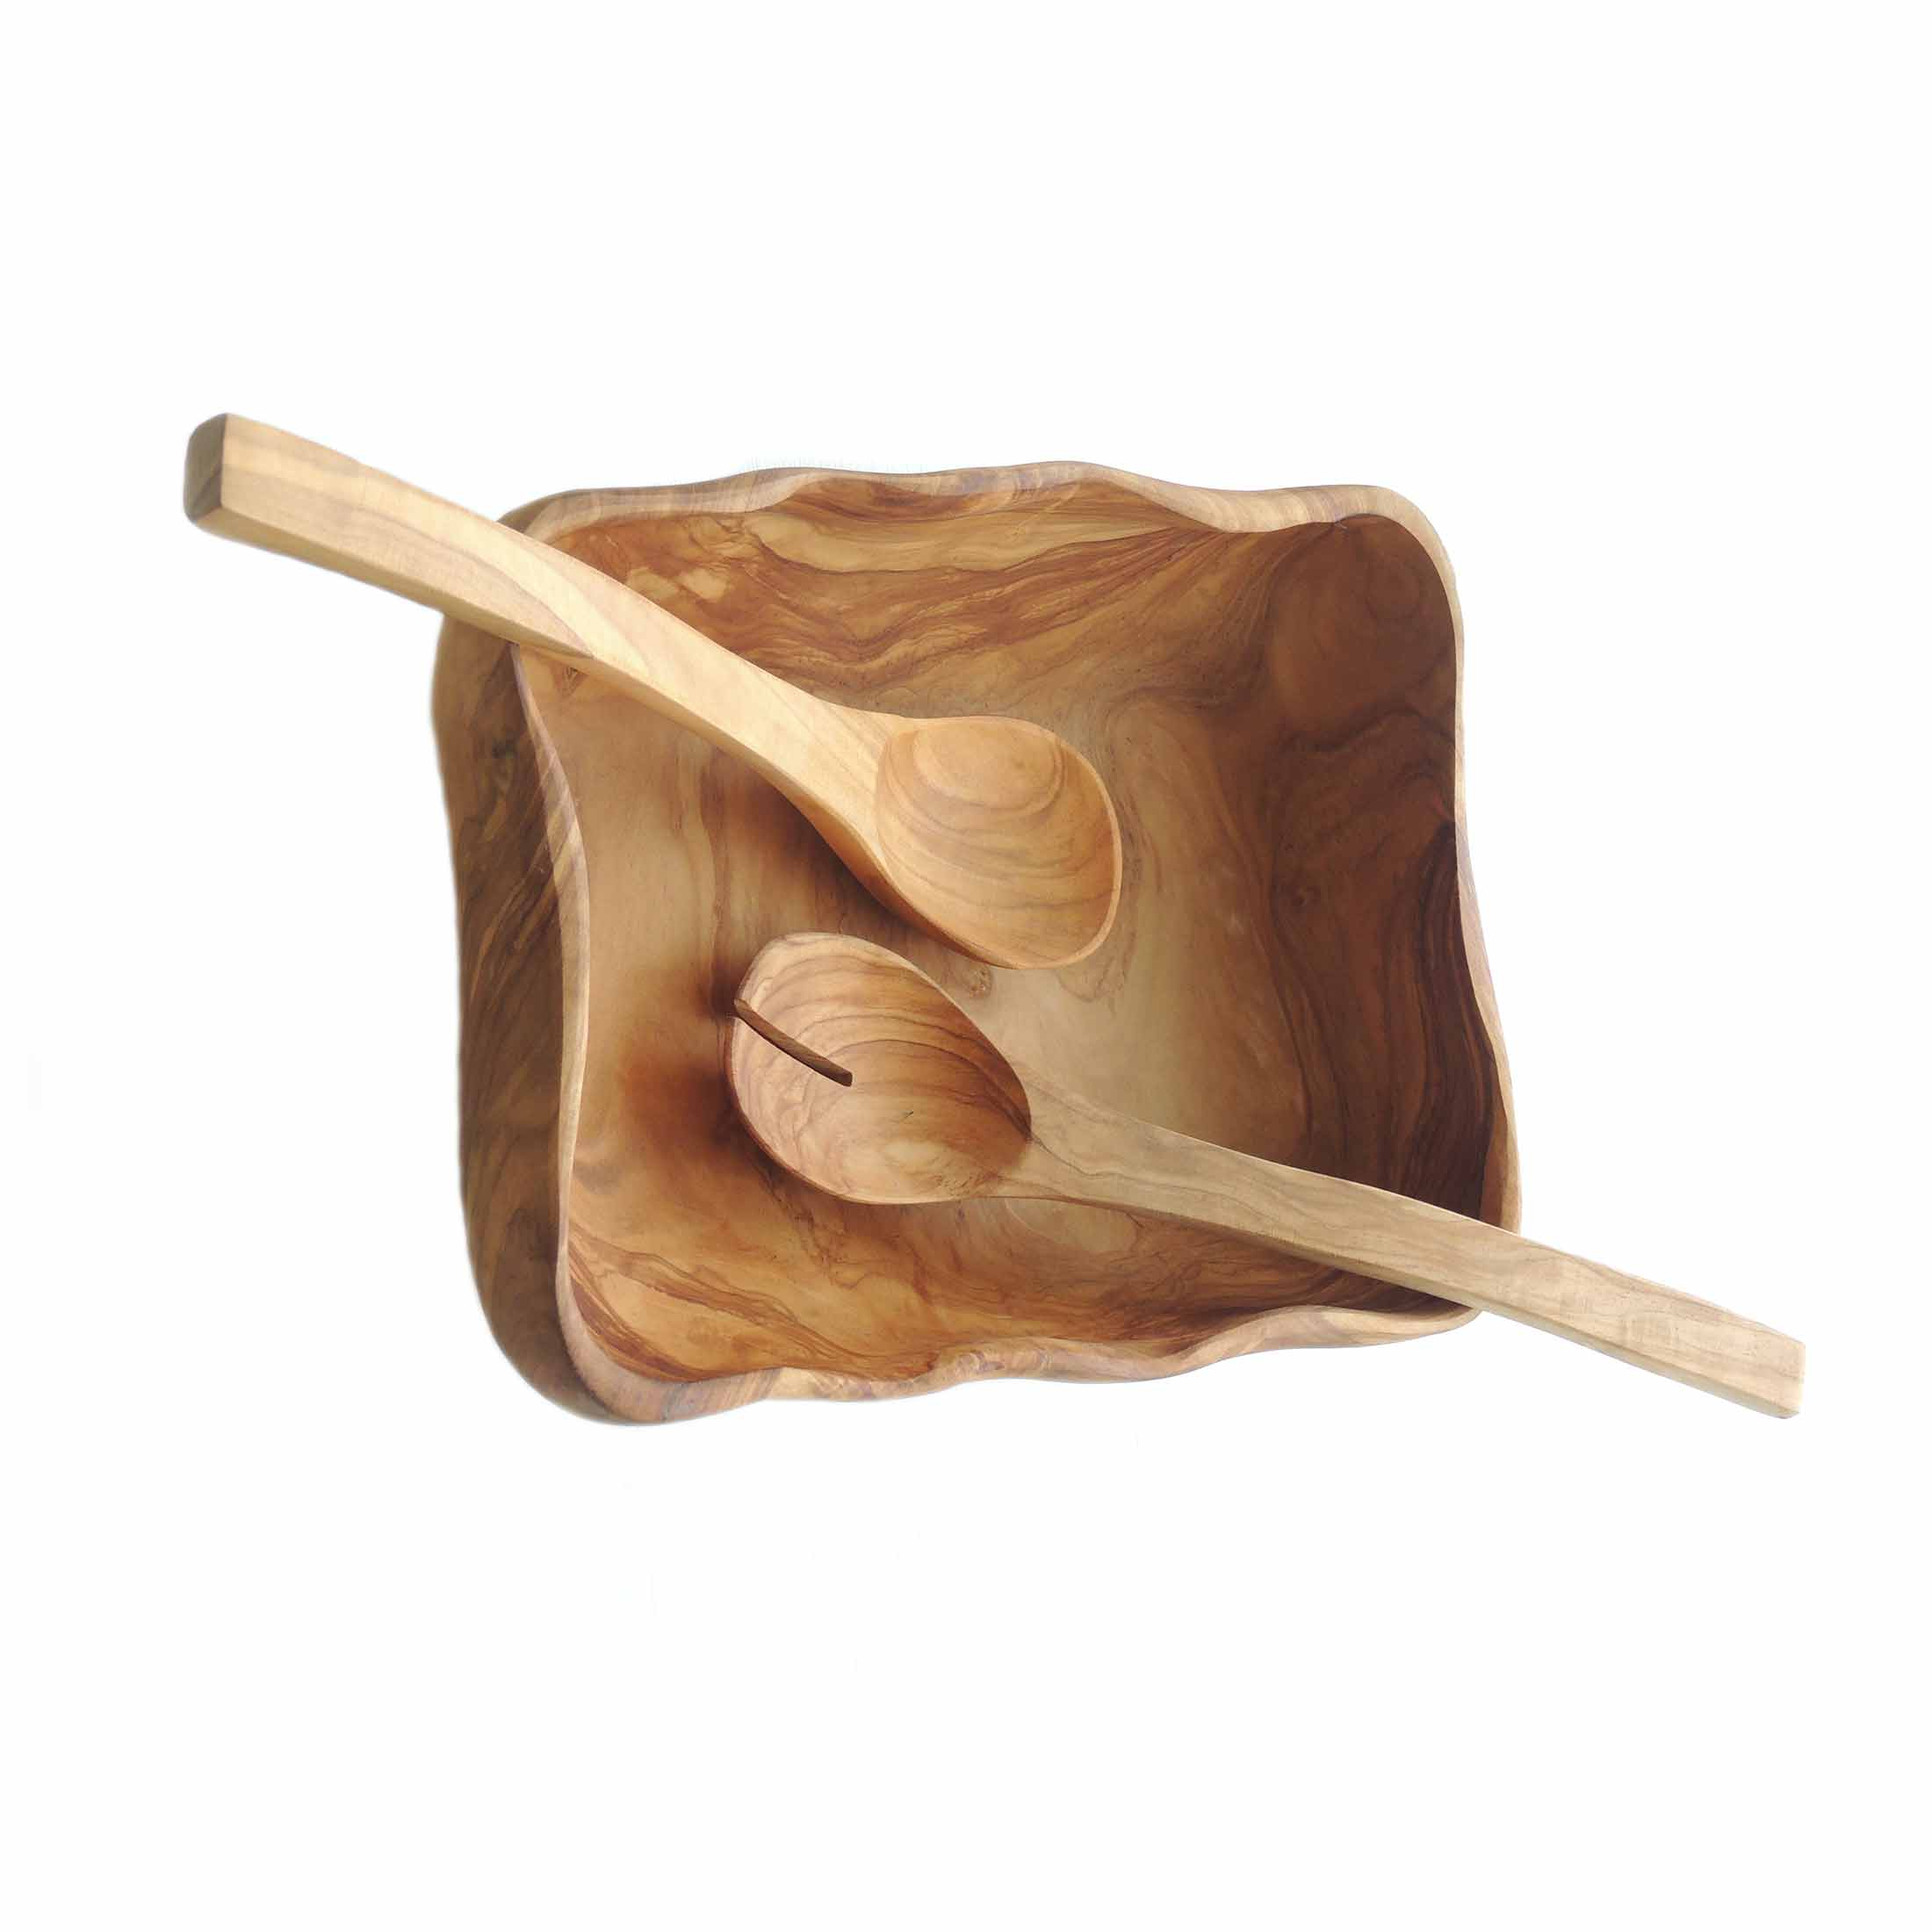 Olive wood salad bowl with salad server in olive wood handcrafted in Peru